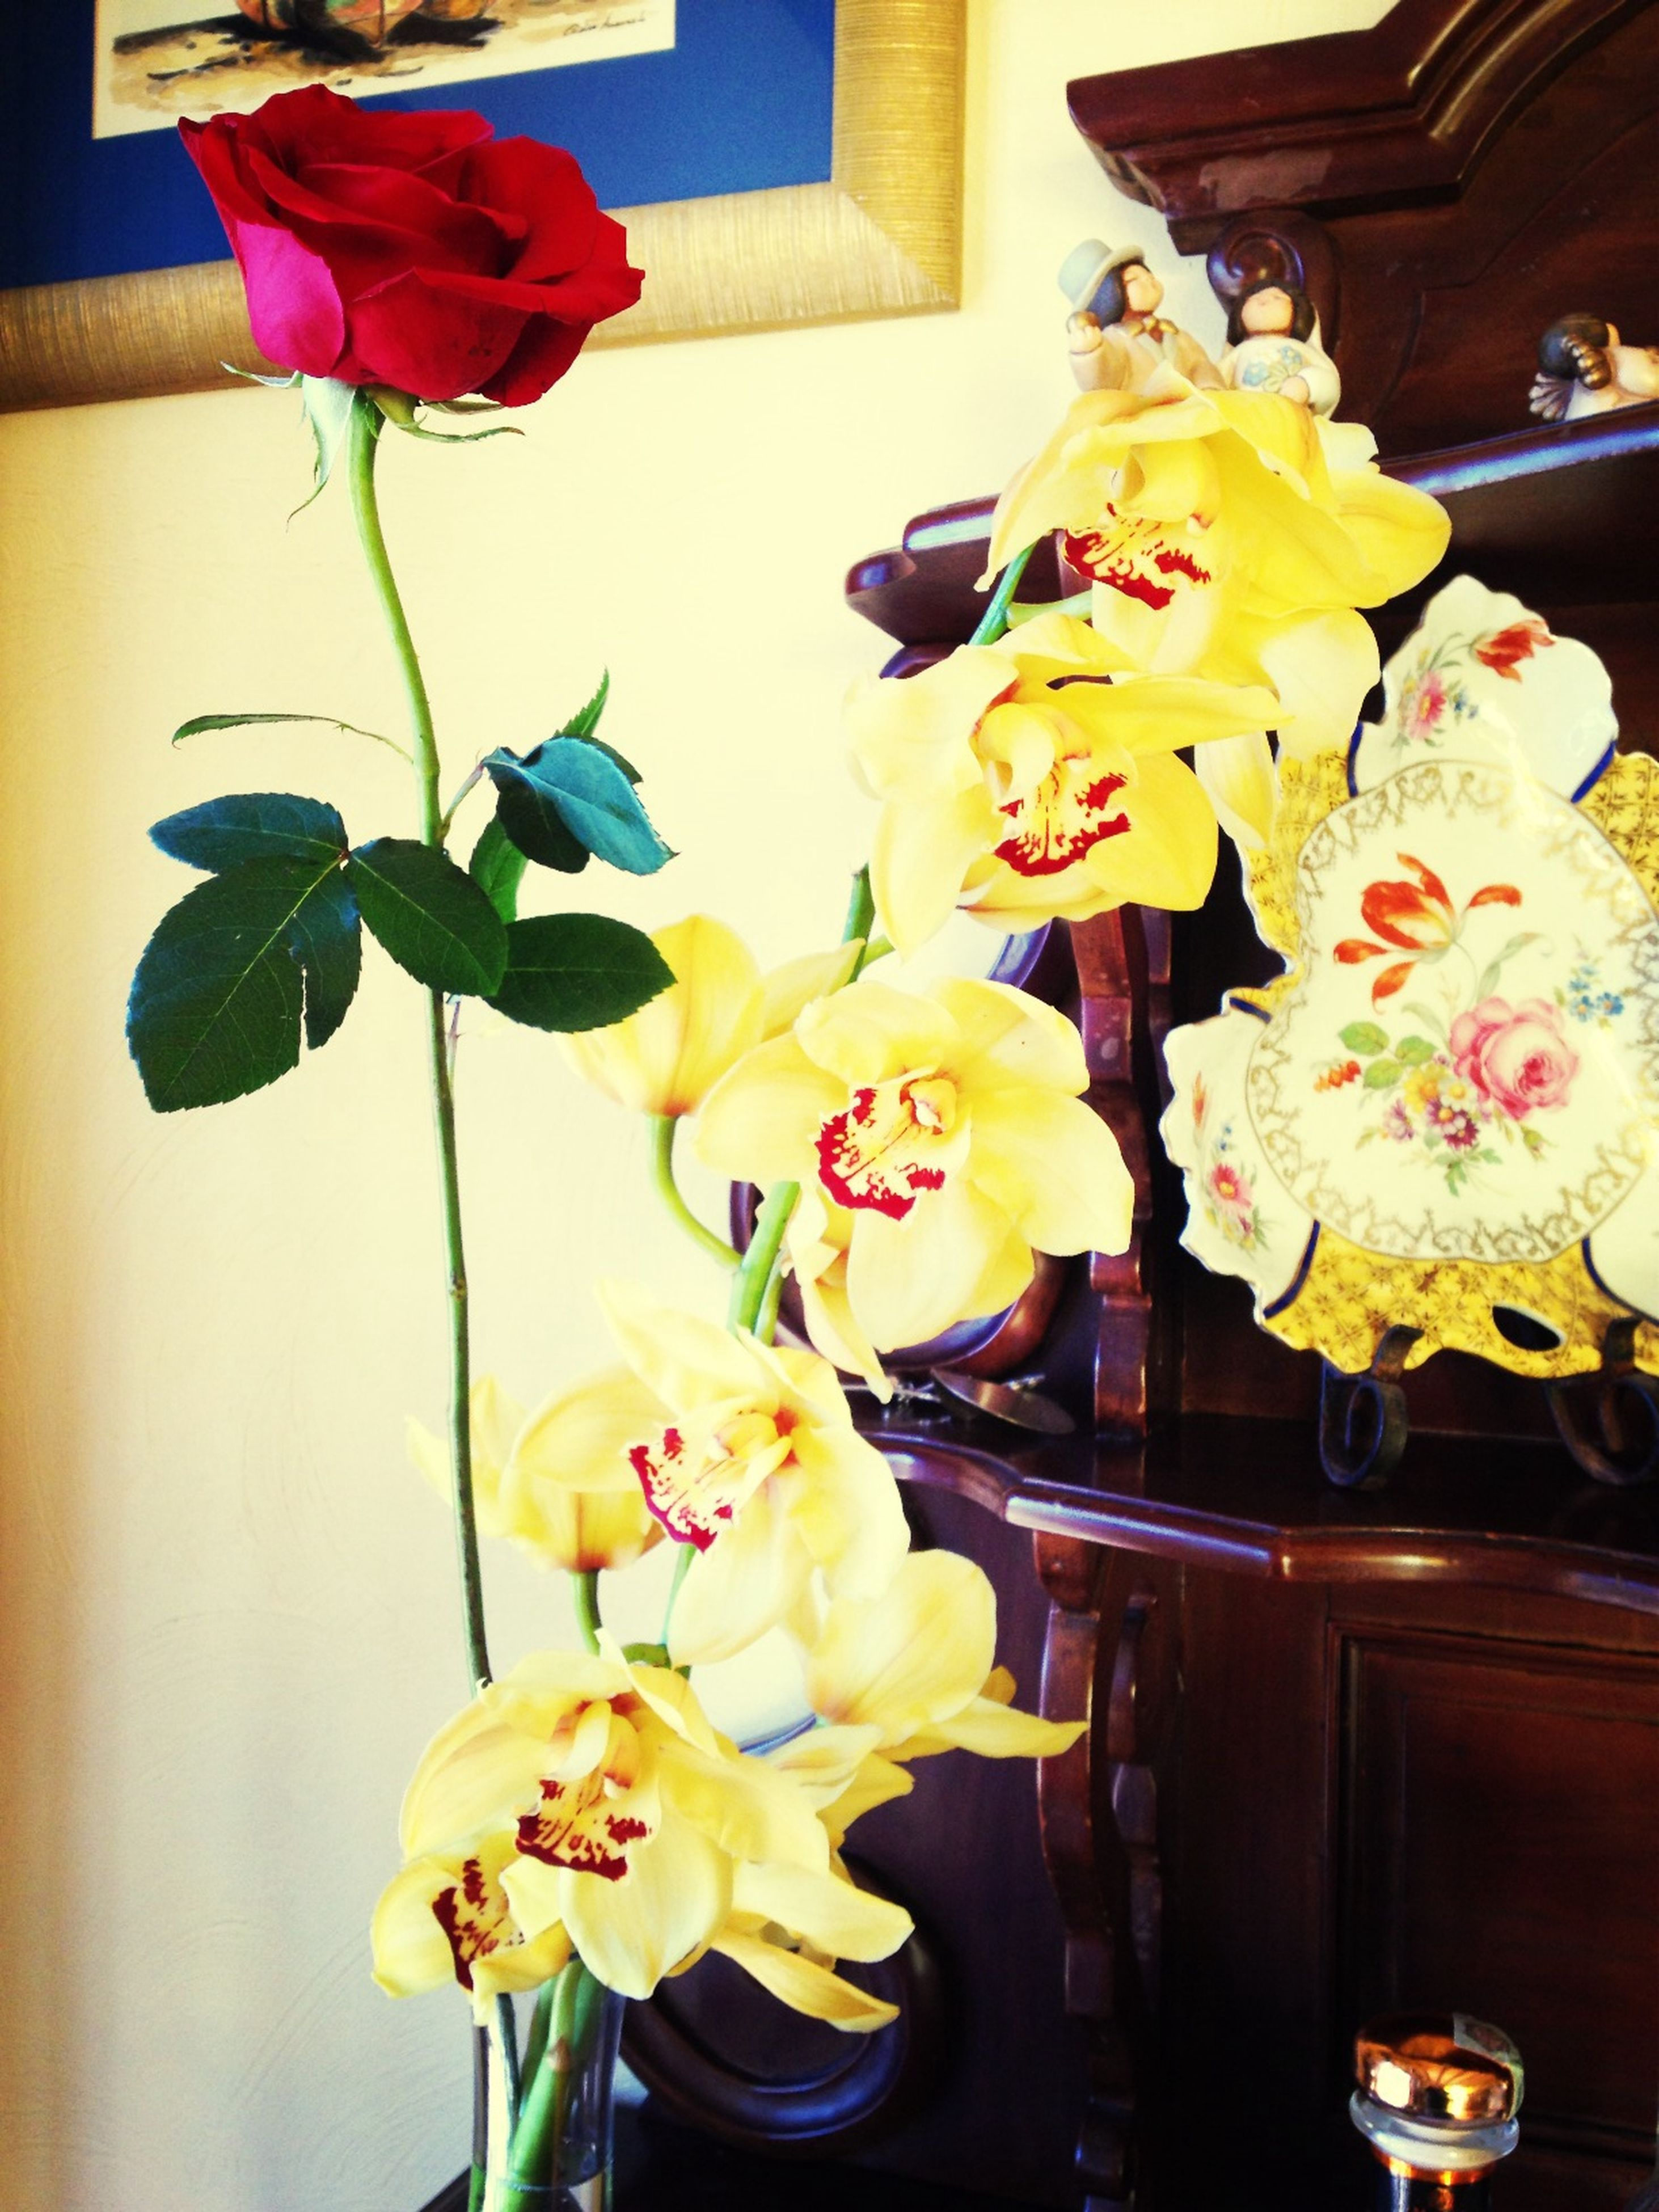 indoors, flower, petal, vase, fragility, home interior, decoration, flower head, yellow, freshness, table, bouquet, flower arrangement, close-up, multi colored, potted plant, rose - flower, wall - building feature, no people, variation